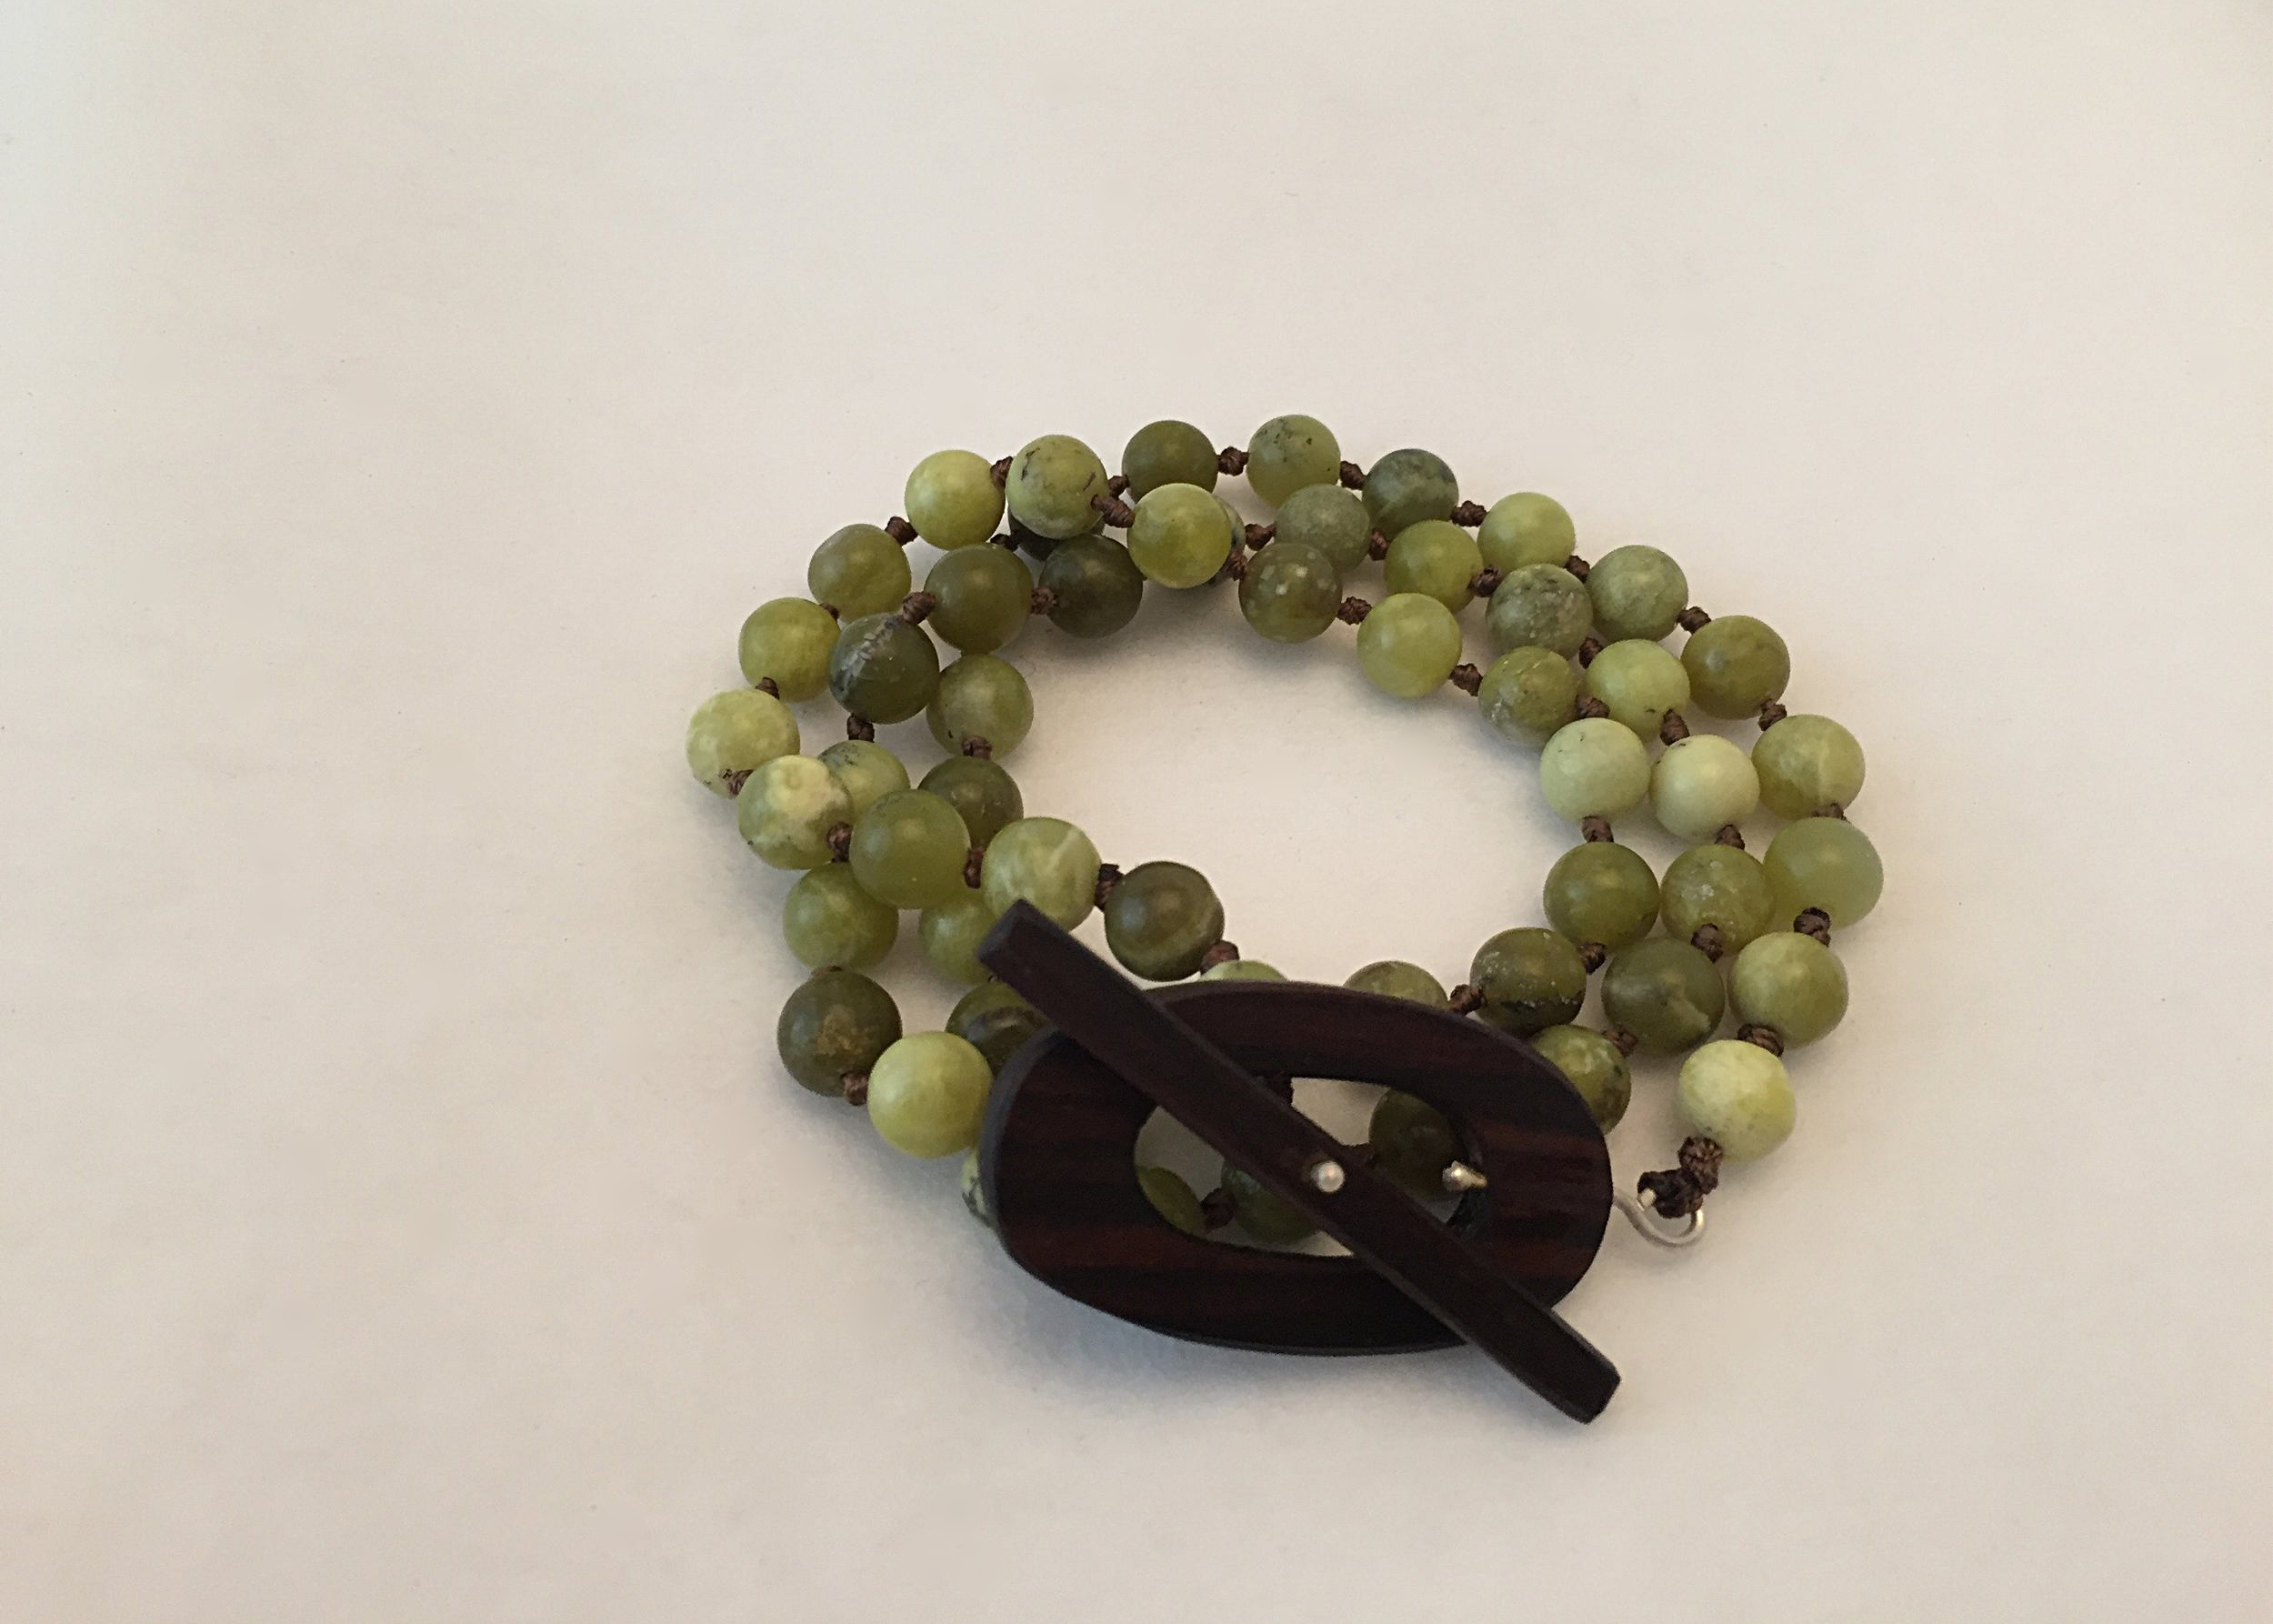 This moss jade can either be wrapped as a bracelet or worn as a necklace.